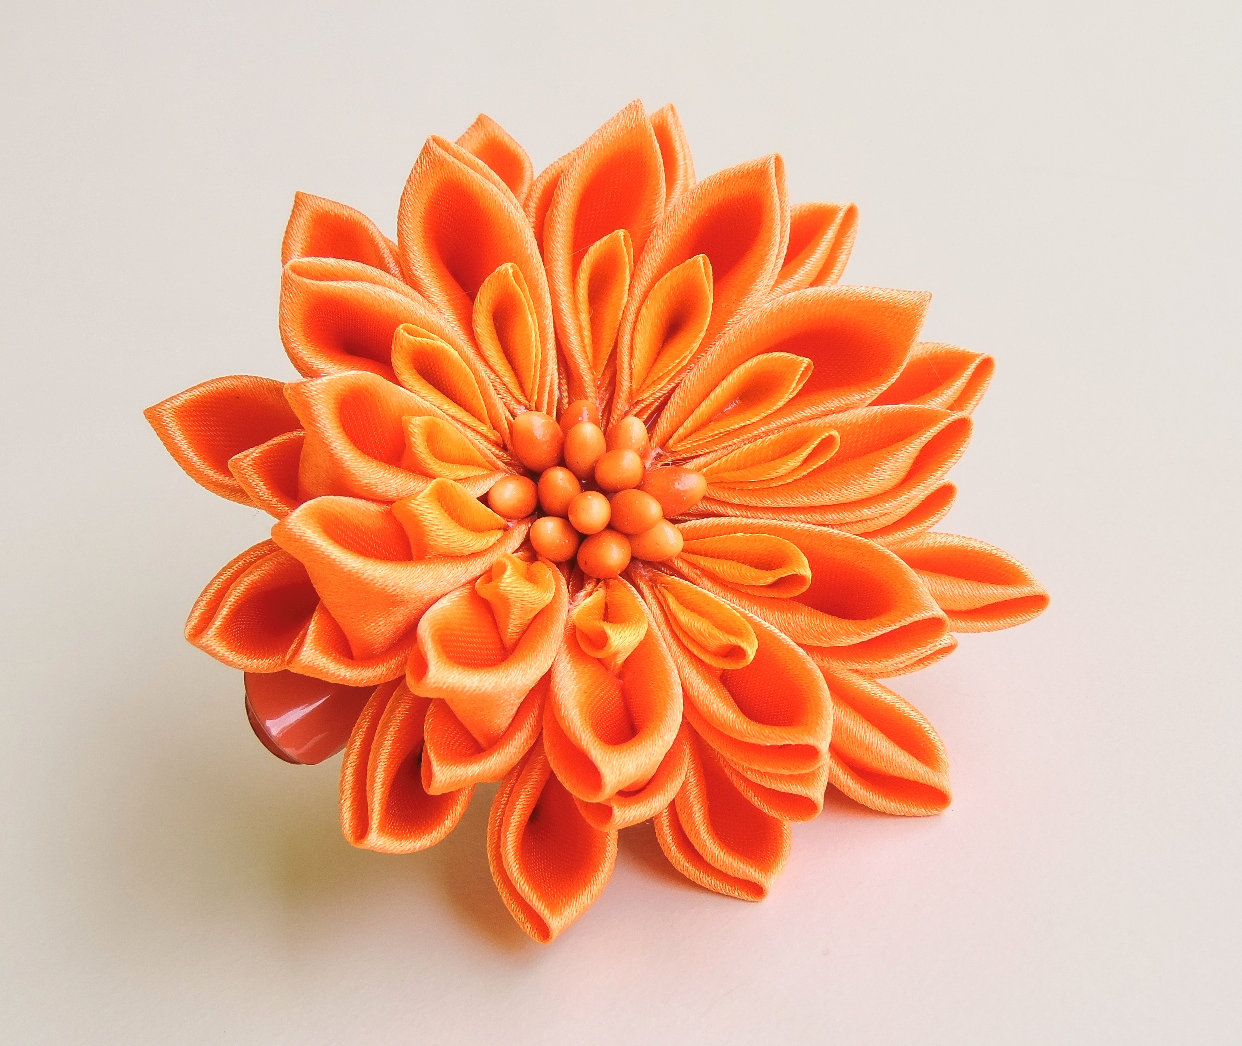 Orange satin chrysanthemum - DIY tutorial